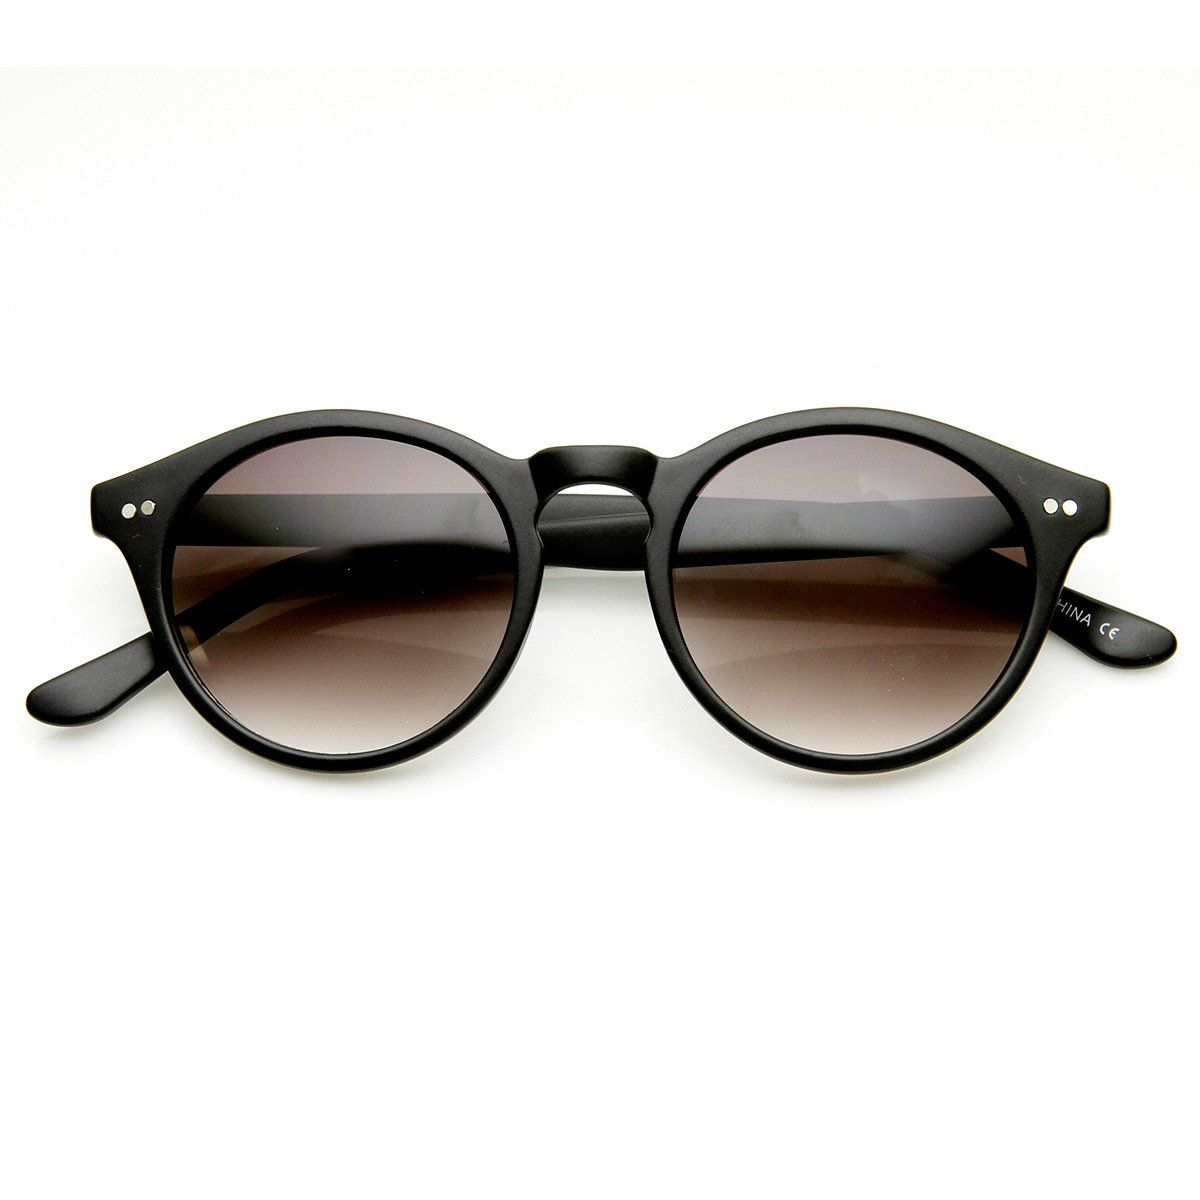 63eaec2b366f0 Vintage Inspired Small Round Circle Key Hole Retro P3 Sunglasses with Rivets